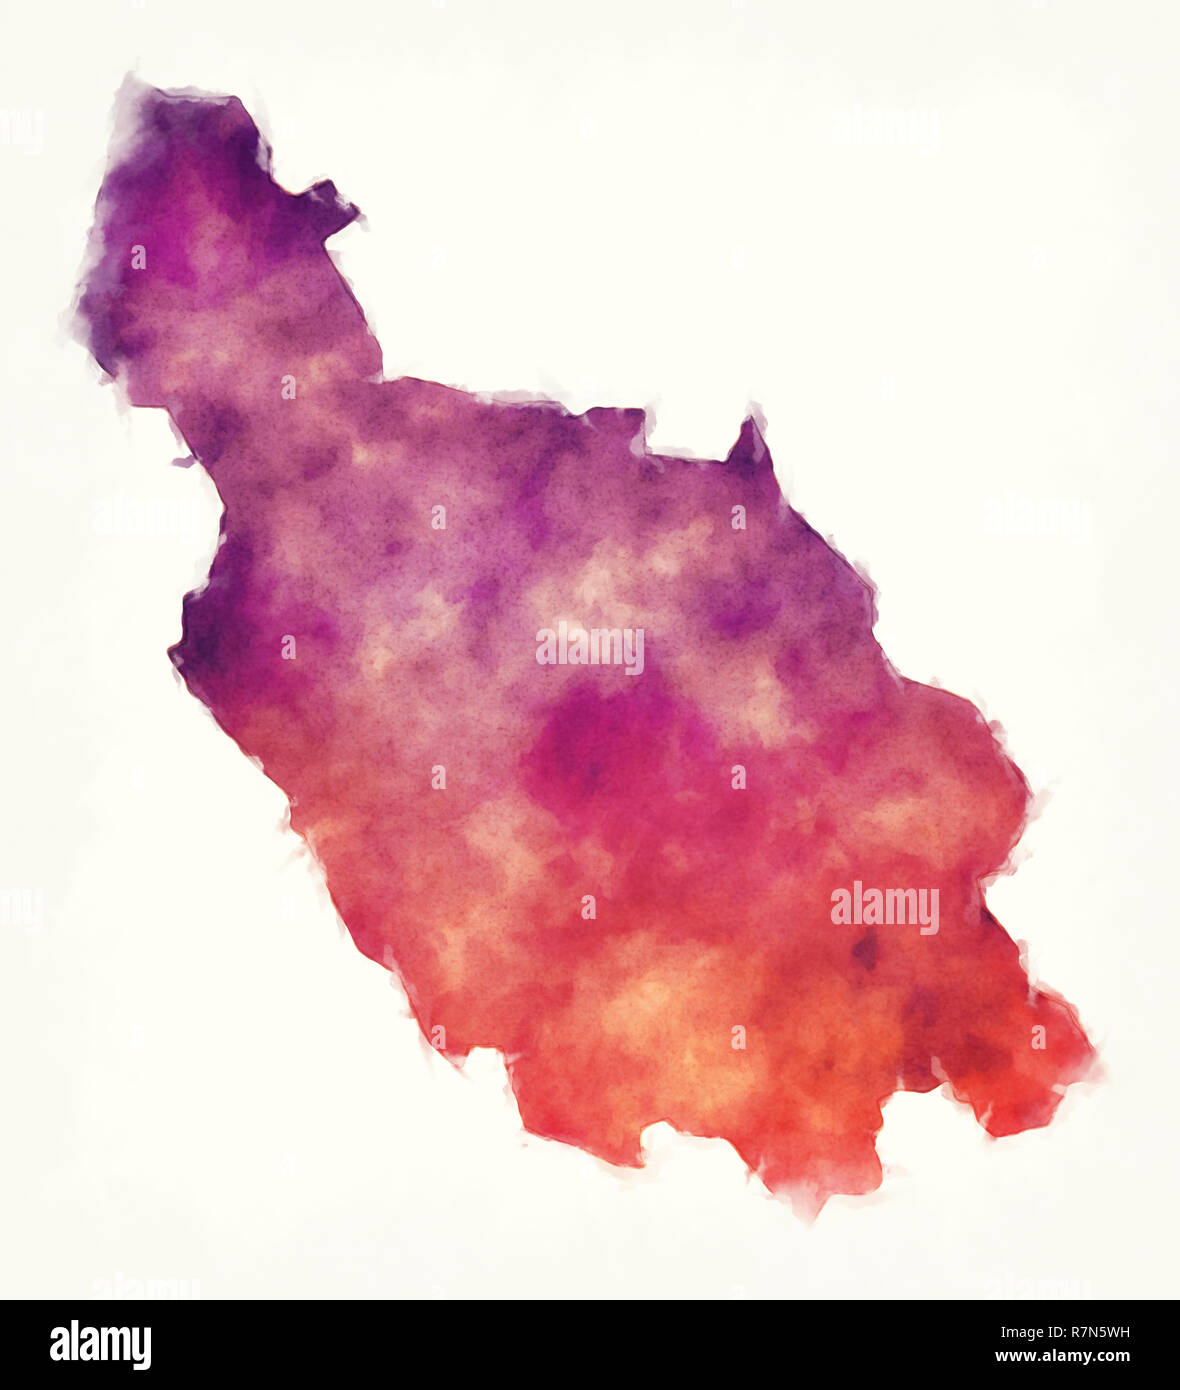 Dalarna county watercolor map of Sweden in front of a white background - Stock Image